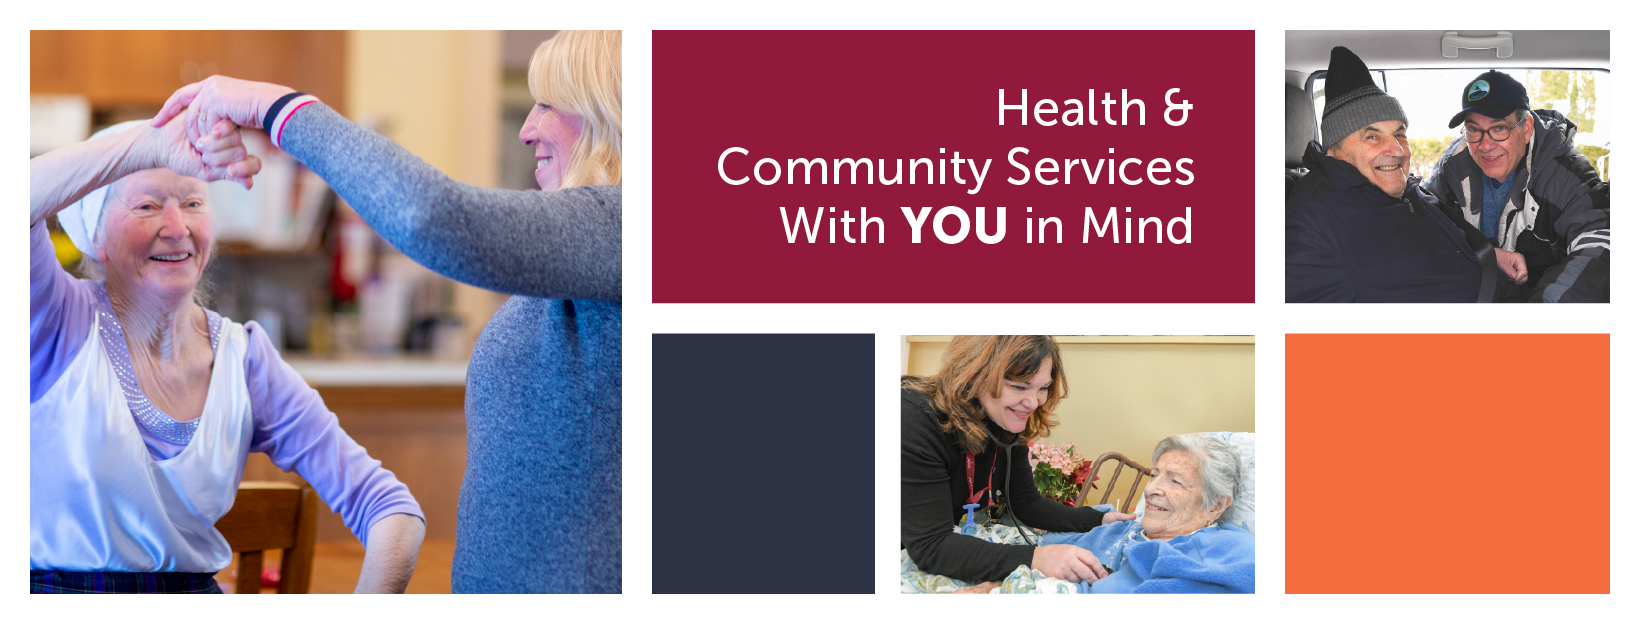 Health & Community Services With YOU in Mind